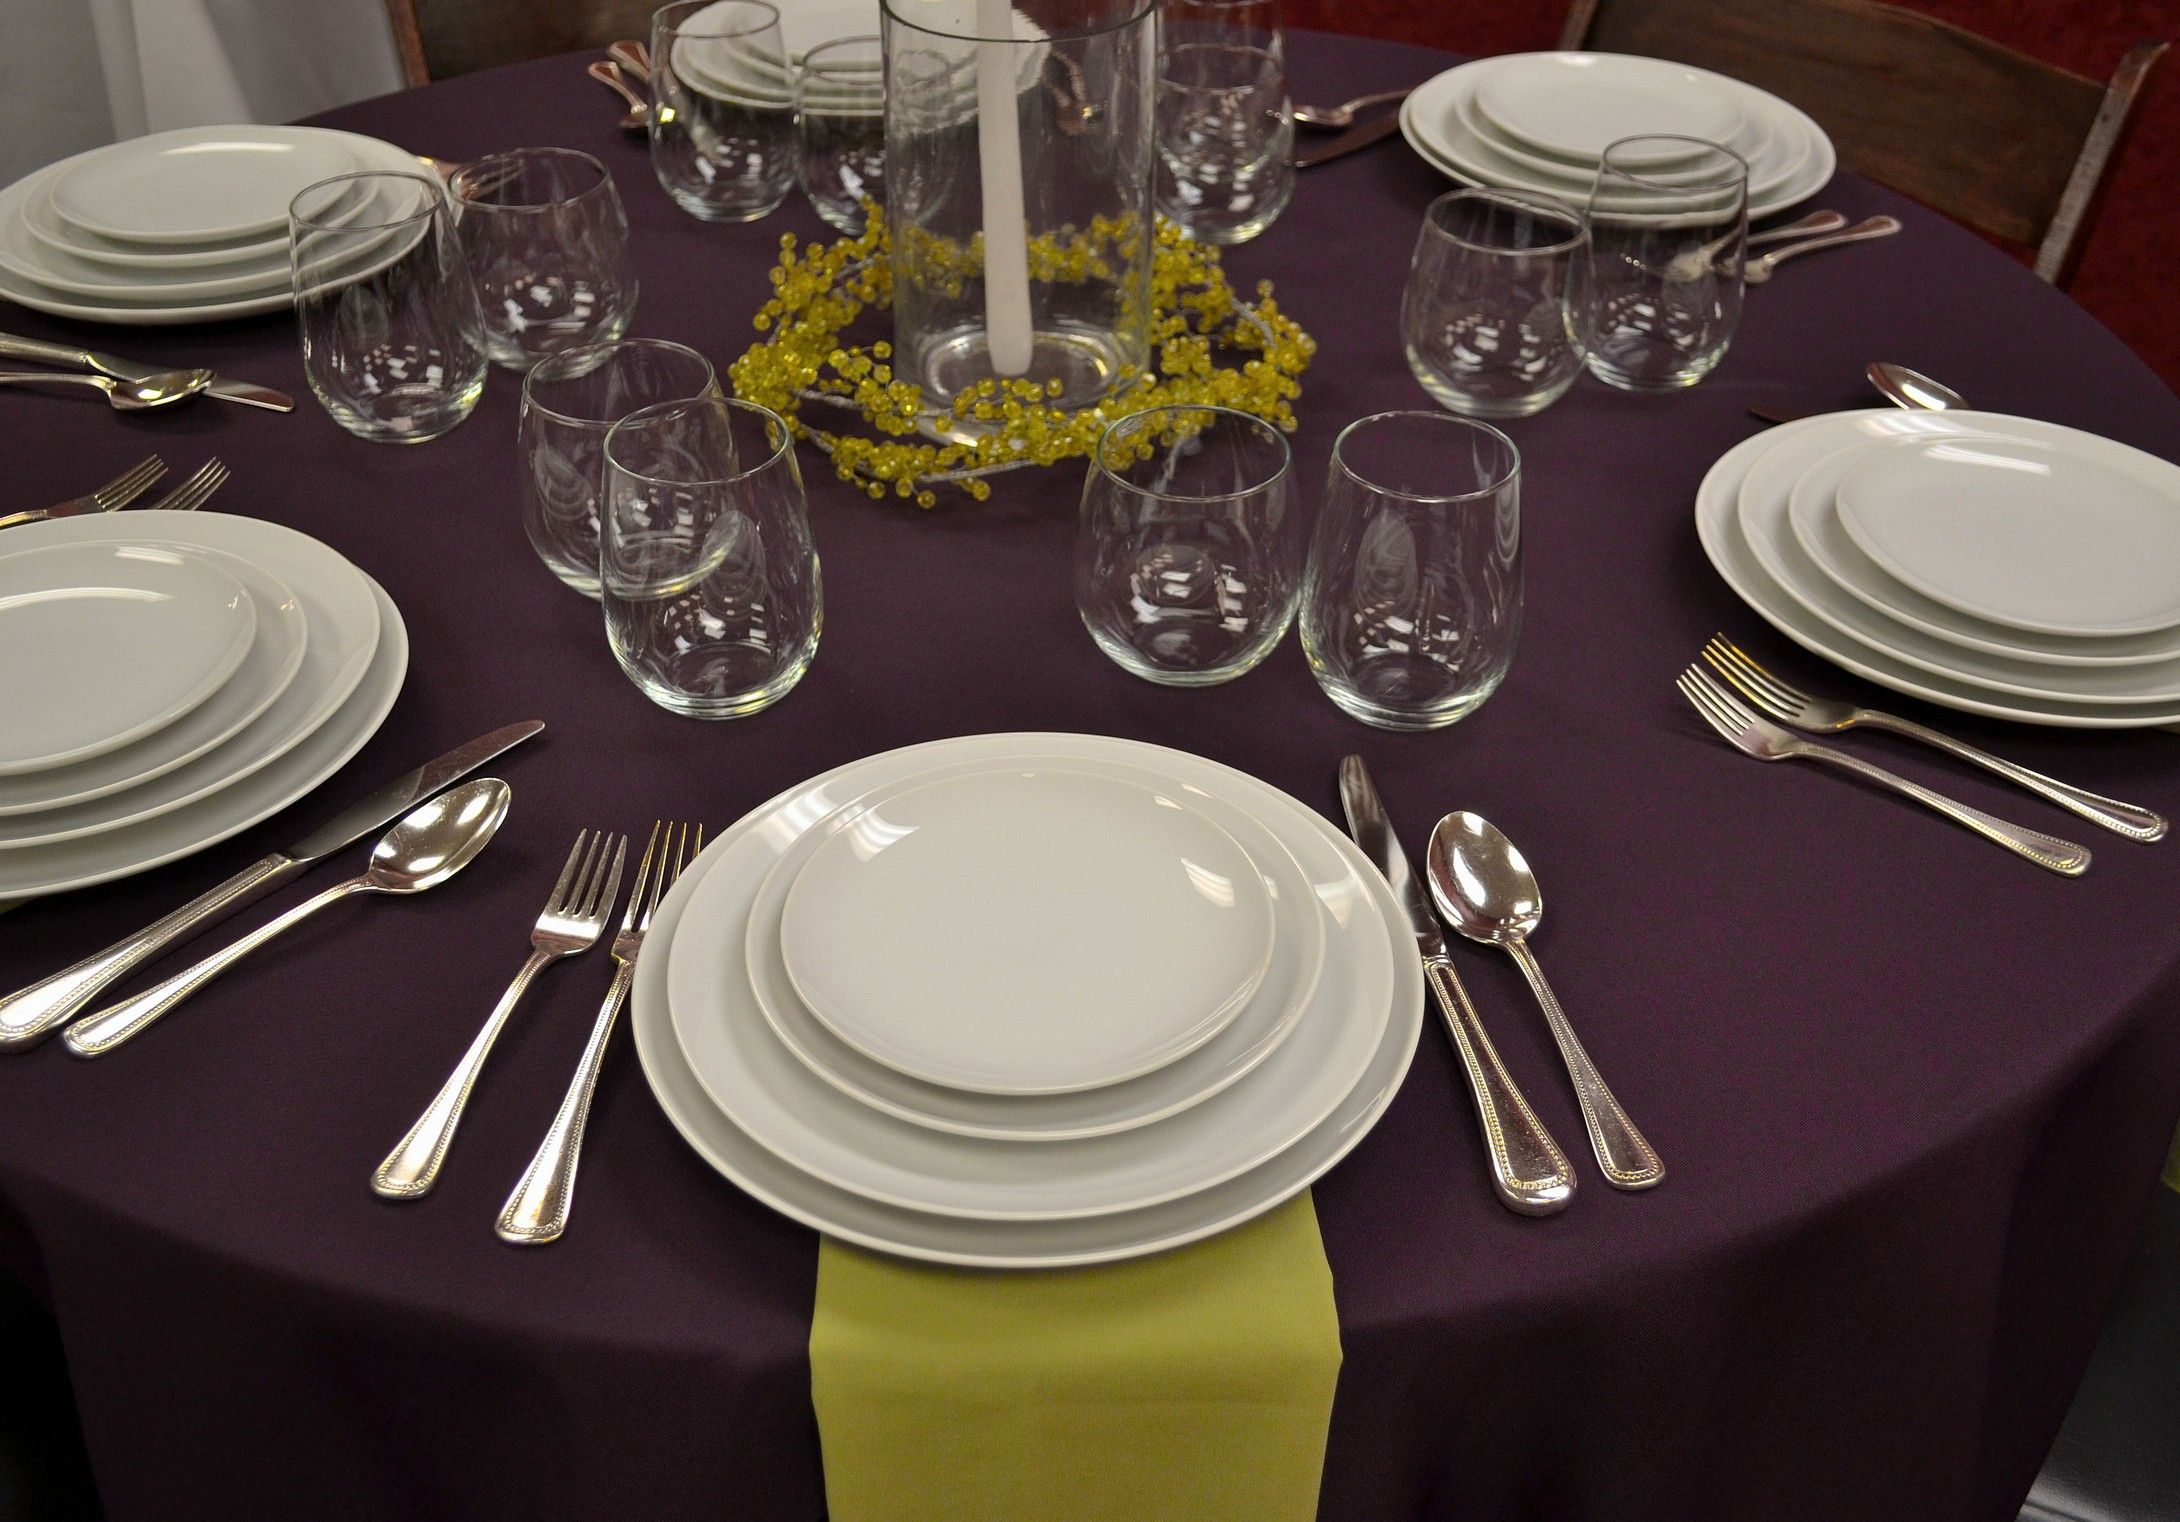 Eggplant Weddings - Pintuck Tablecloth & White Rim Plates